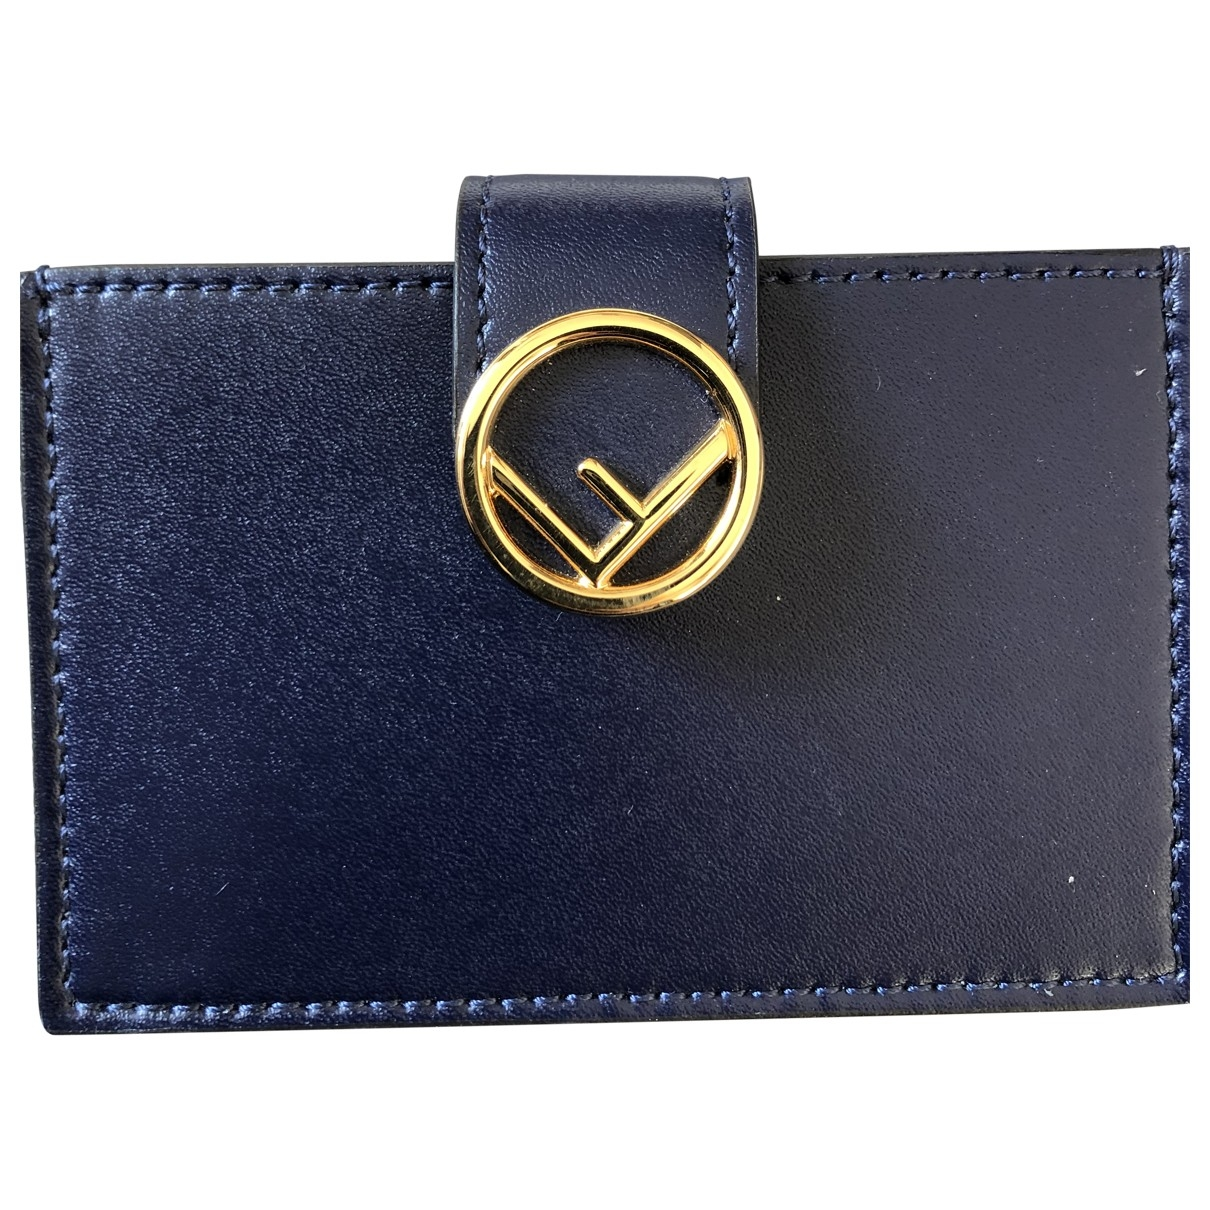 Fendi \N Navy Leather wallet for Women \N